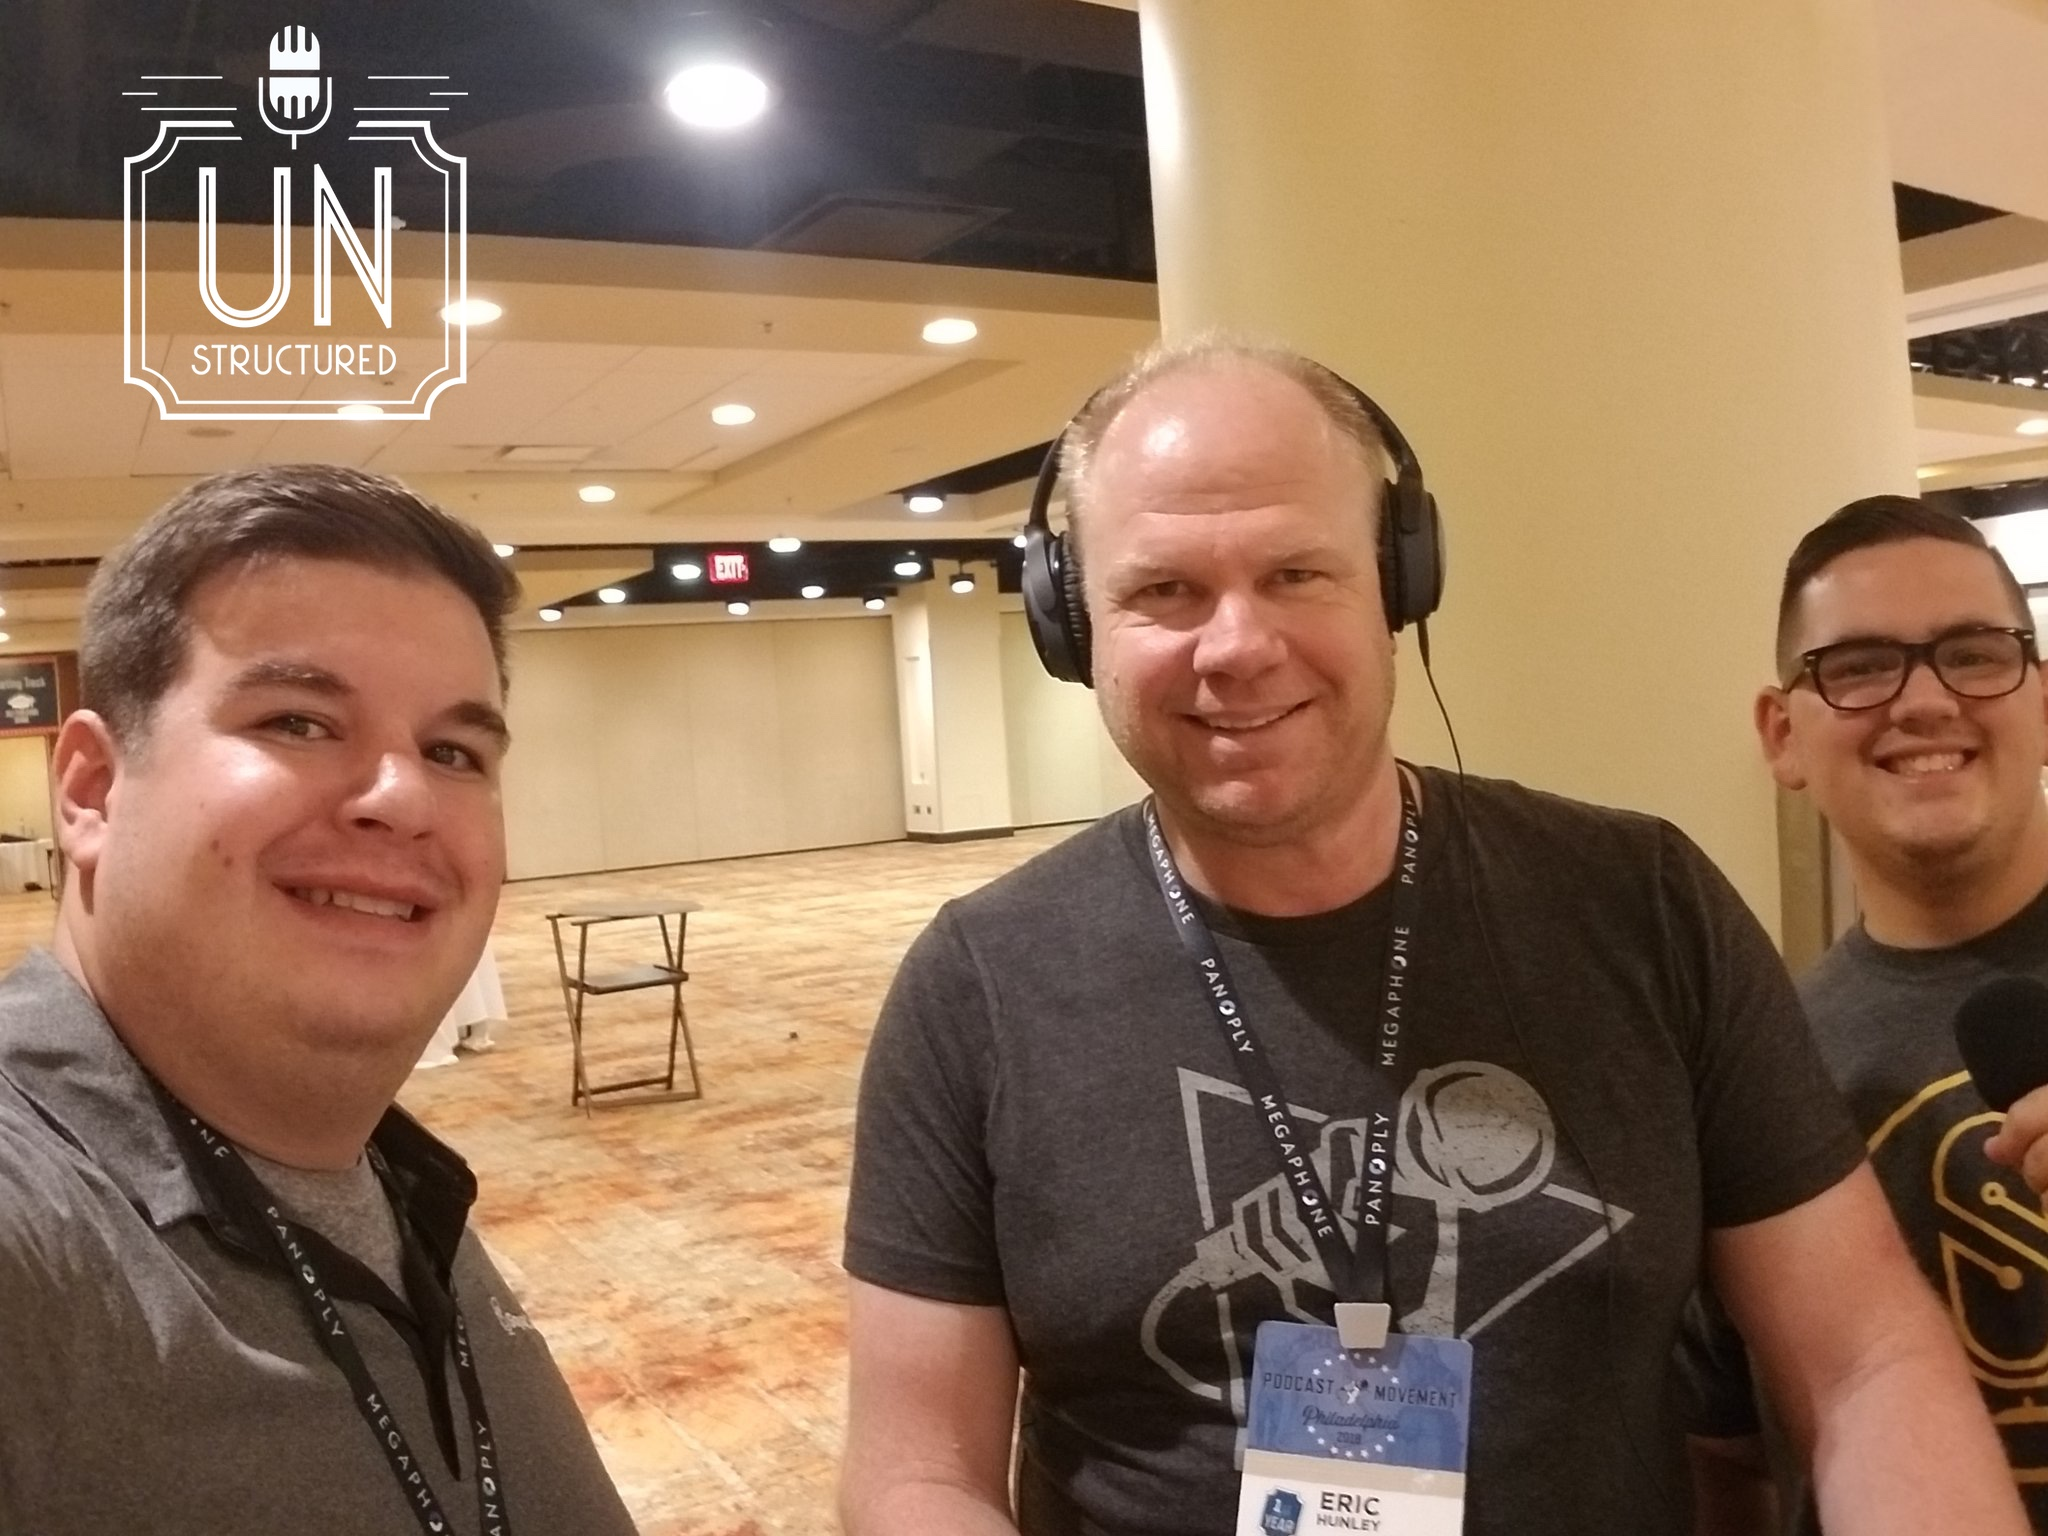 044 - Squadcast UnstructuredPod Unstructured interviews - Dynamic Informal Conversations with unique wide-ranging and well-researched interviews hosted by Eric Hunley